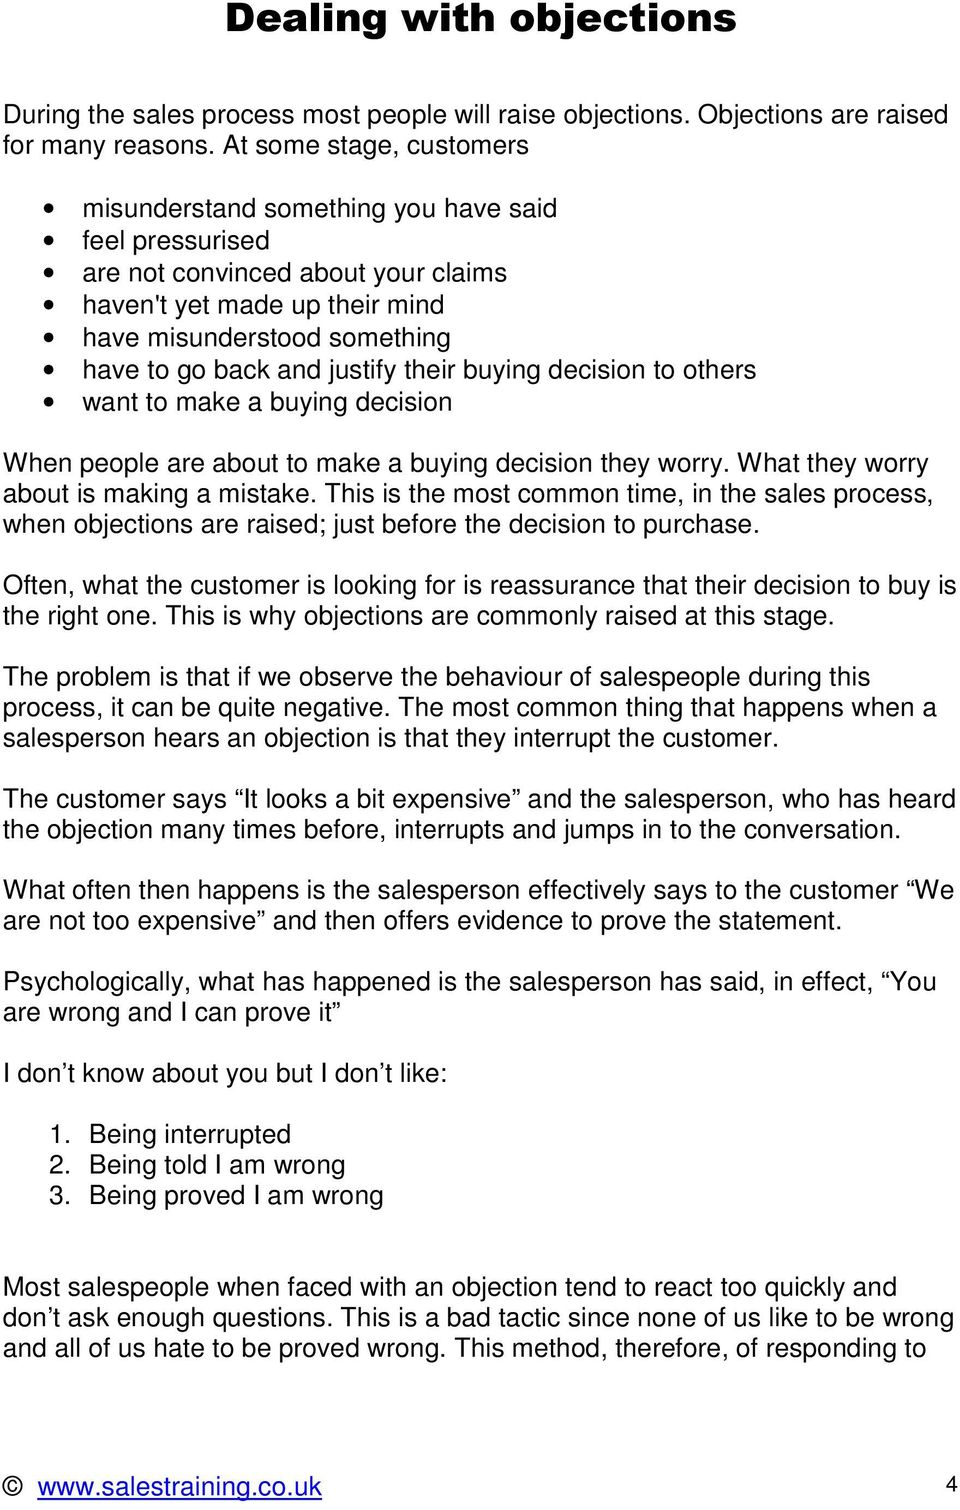 justify their buying decision to others want to make a buying decision When people are about to make a buying decision they worry. What they worry about is making a mistake.